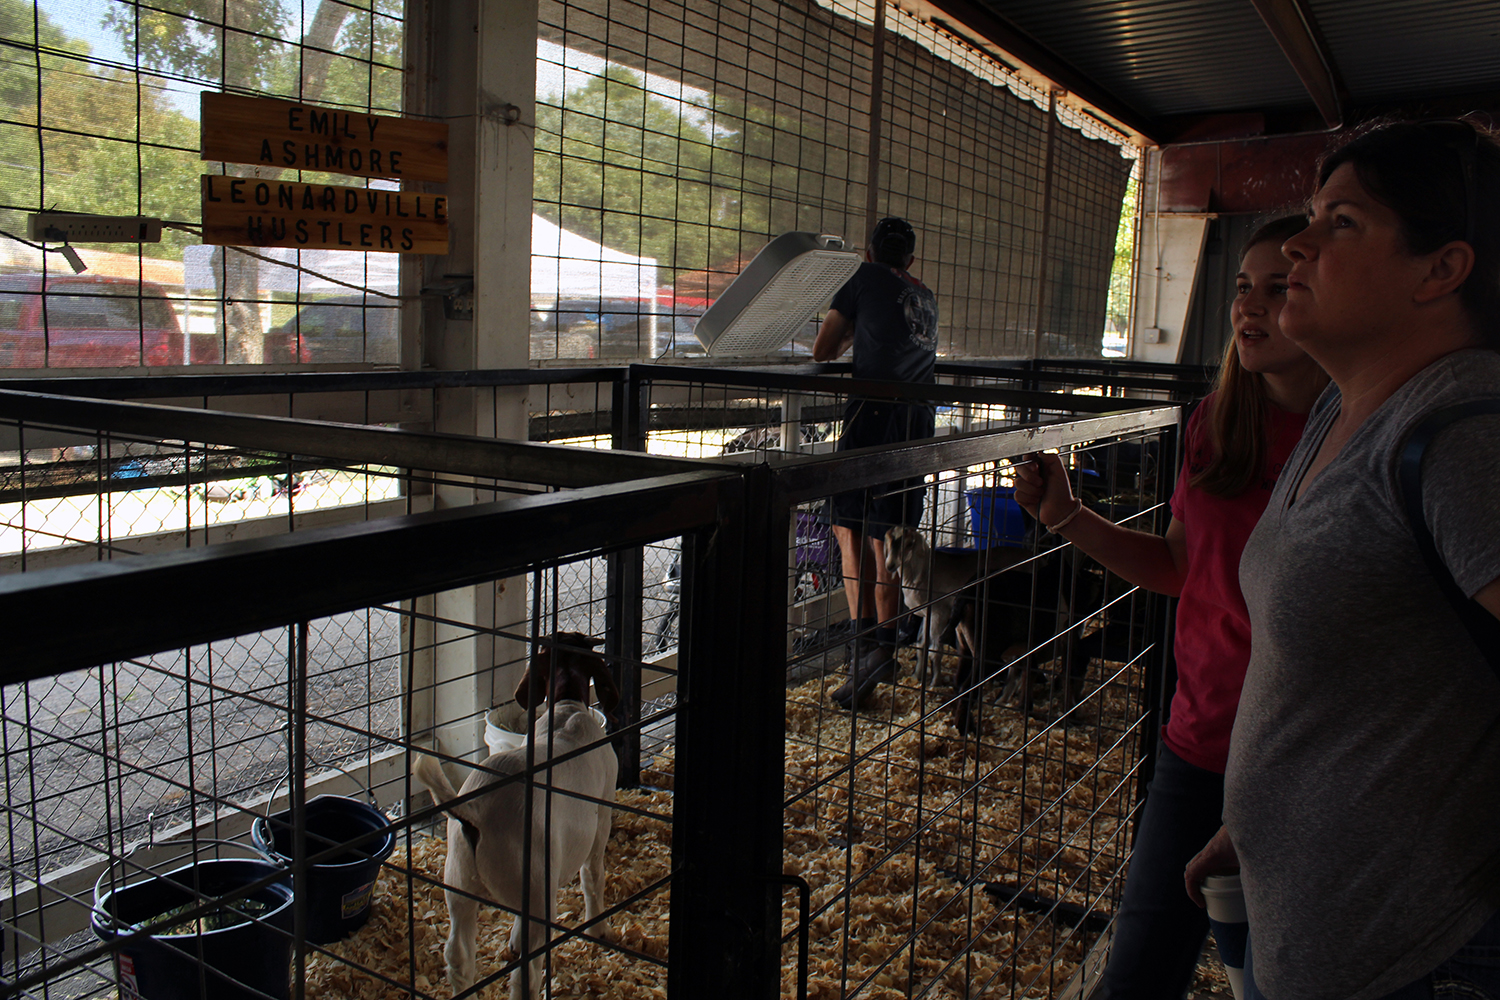 Sophomore Emily Ashmore waits next to her goat while waiting for the live stock judging to start.